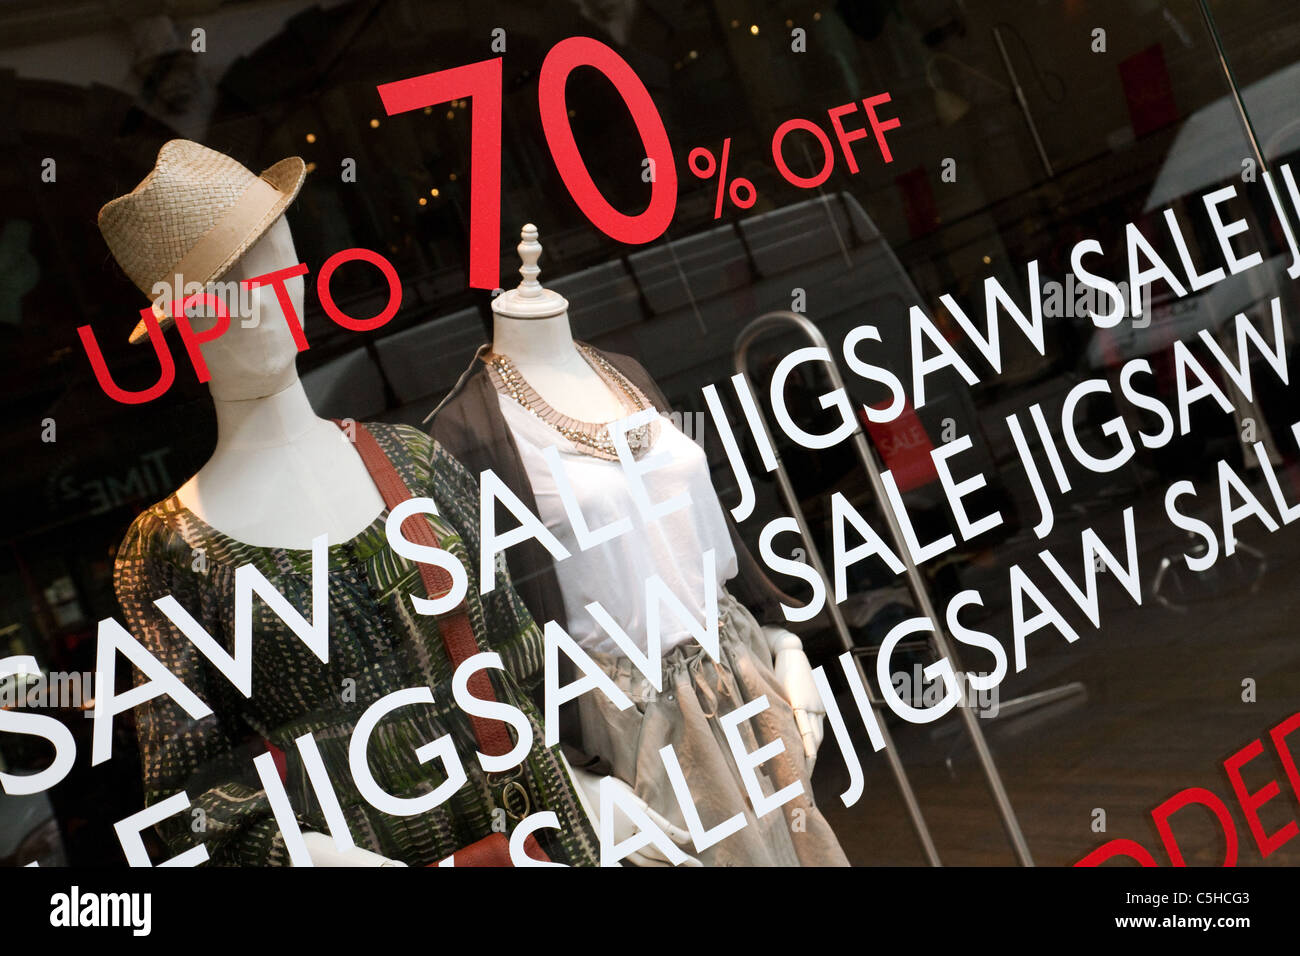 70% off sale sign on window of Jigsaw Ladies clothes storer, Covent Garden, London UK - Stock Image